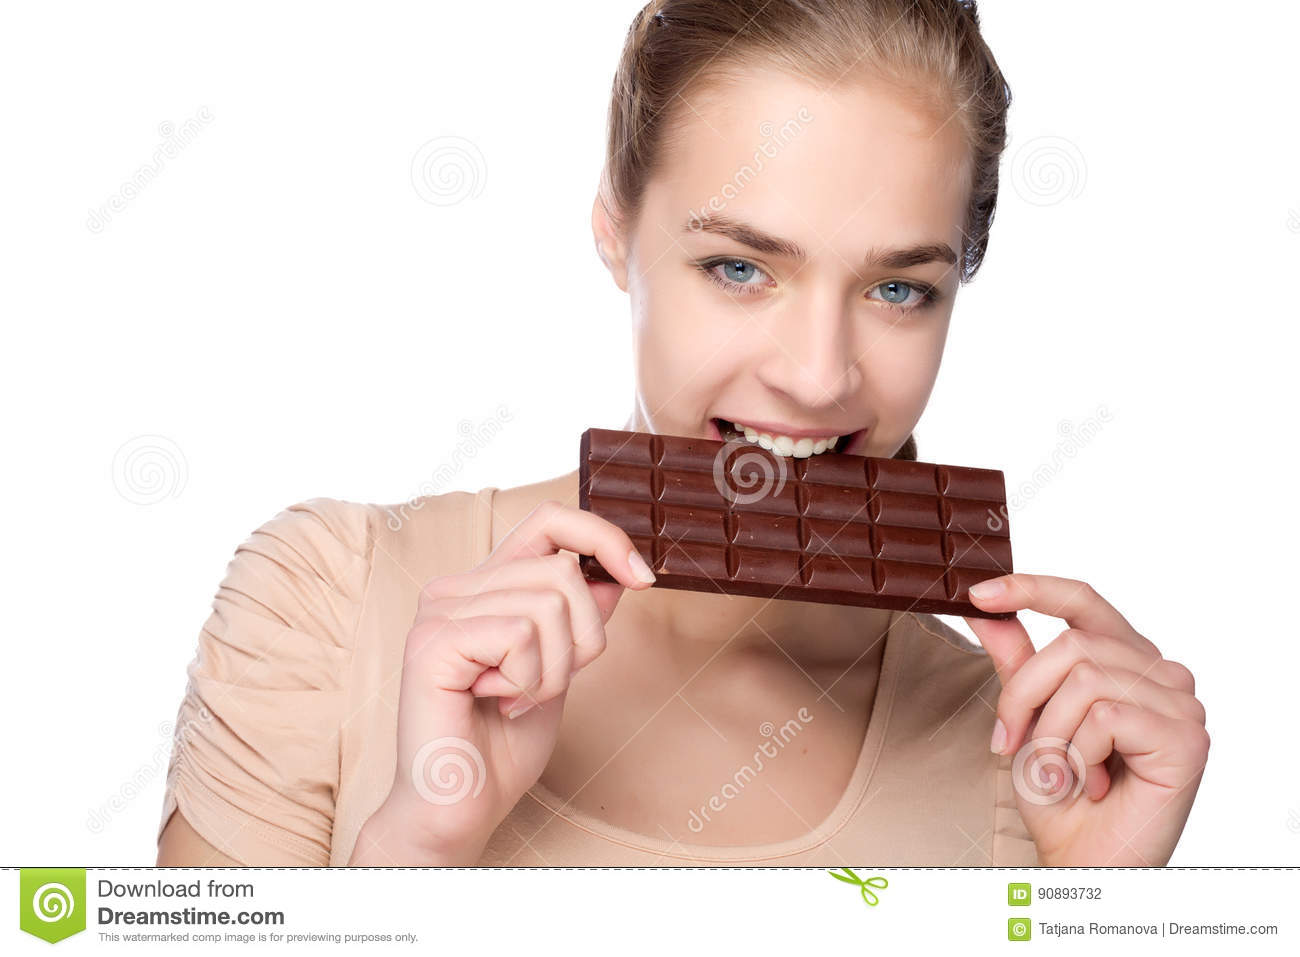 Girl holding big chocolate bar in her tooths